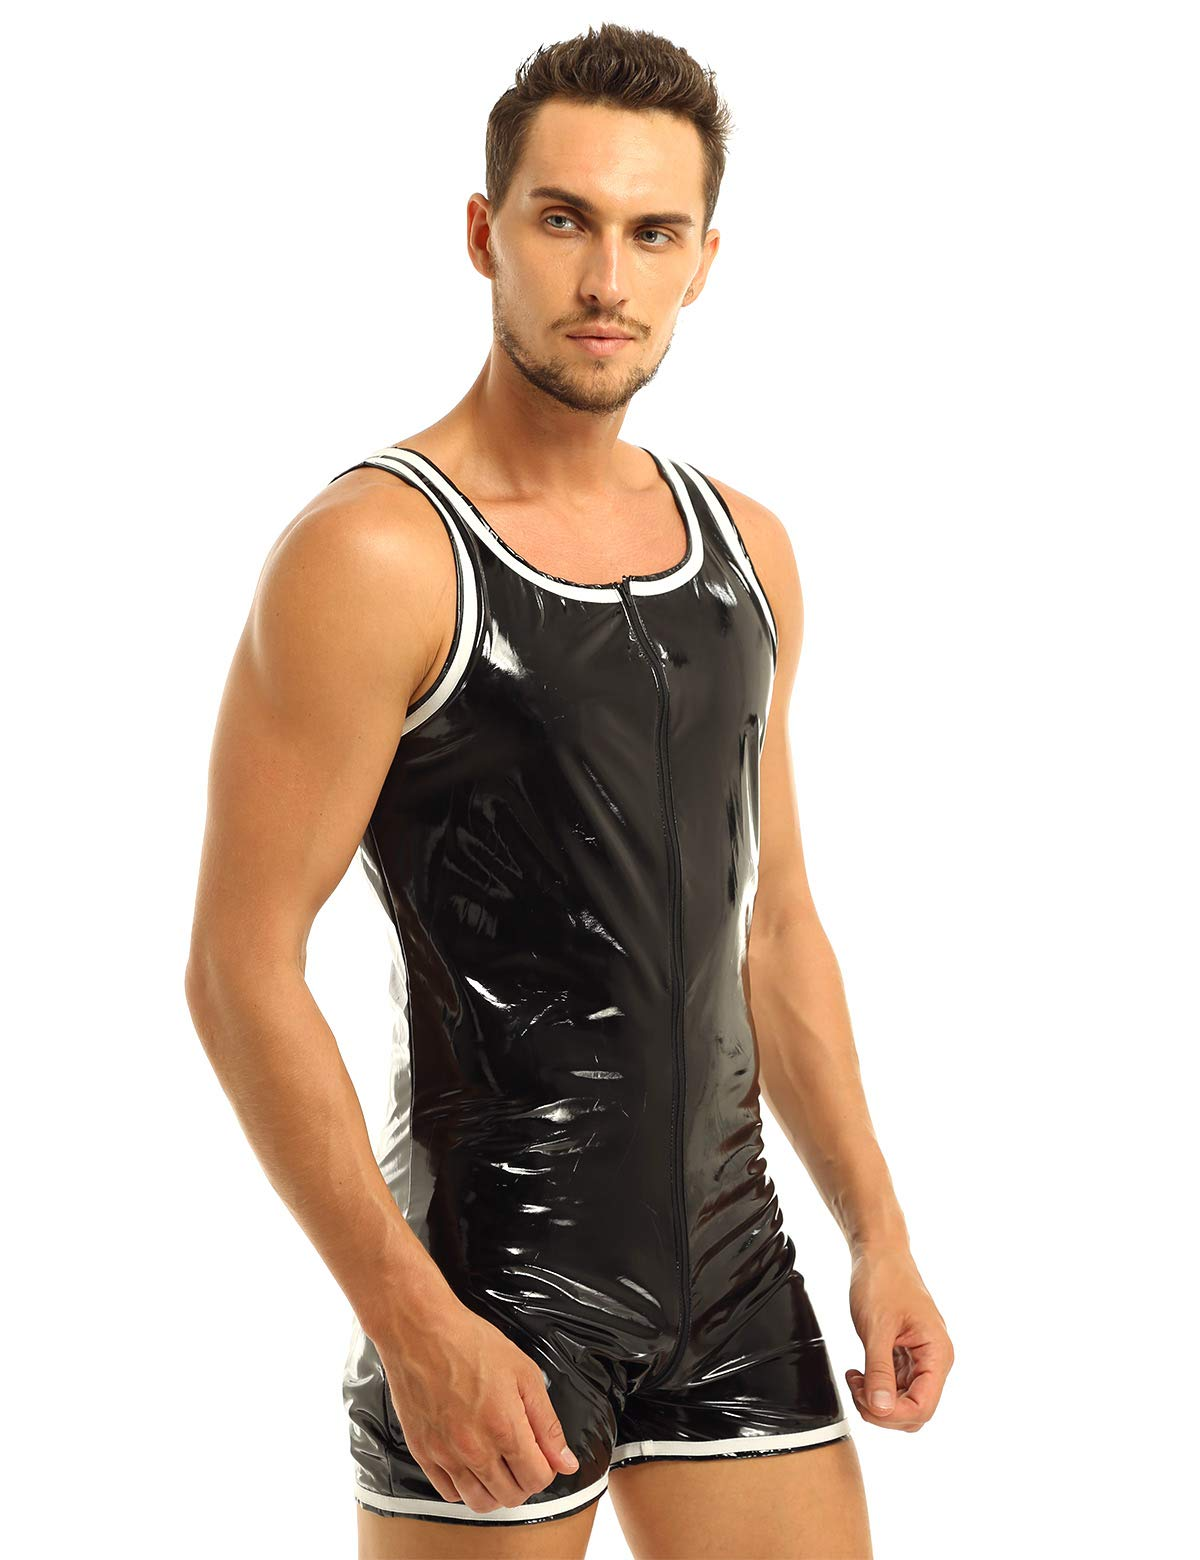 Yizyif Mens Pvc Wet Look Leather Sleeveless Bodysuit Leotard Zipper Crotch Tights Catsuit Black Large